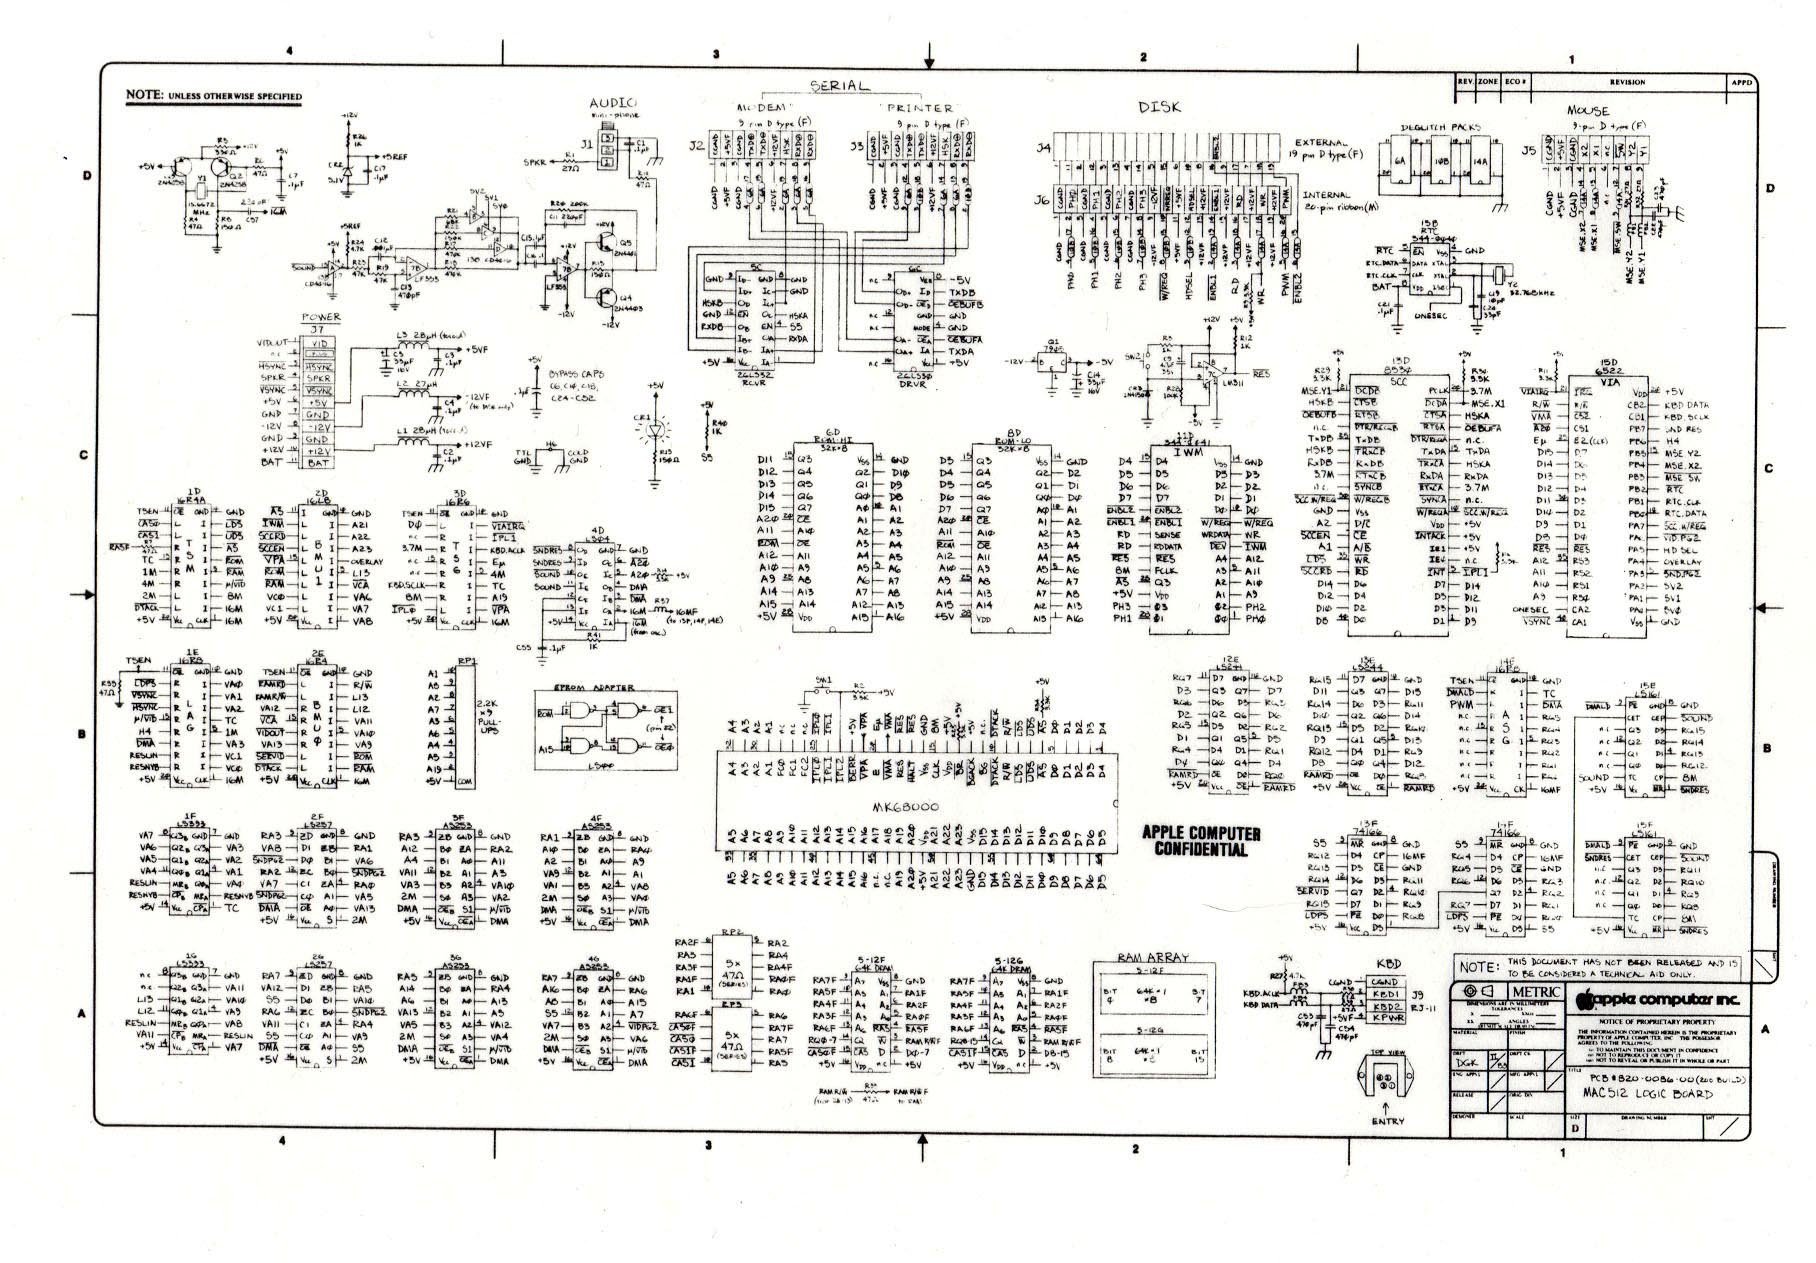 mac logic schematic digibarn diagrams original macintosh 512k logic board schematic wiring diagram for apple tv at honlapkeszites.co